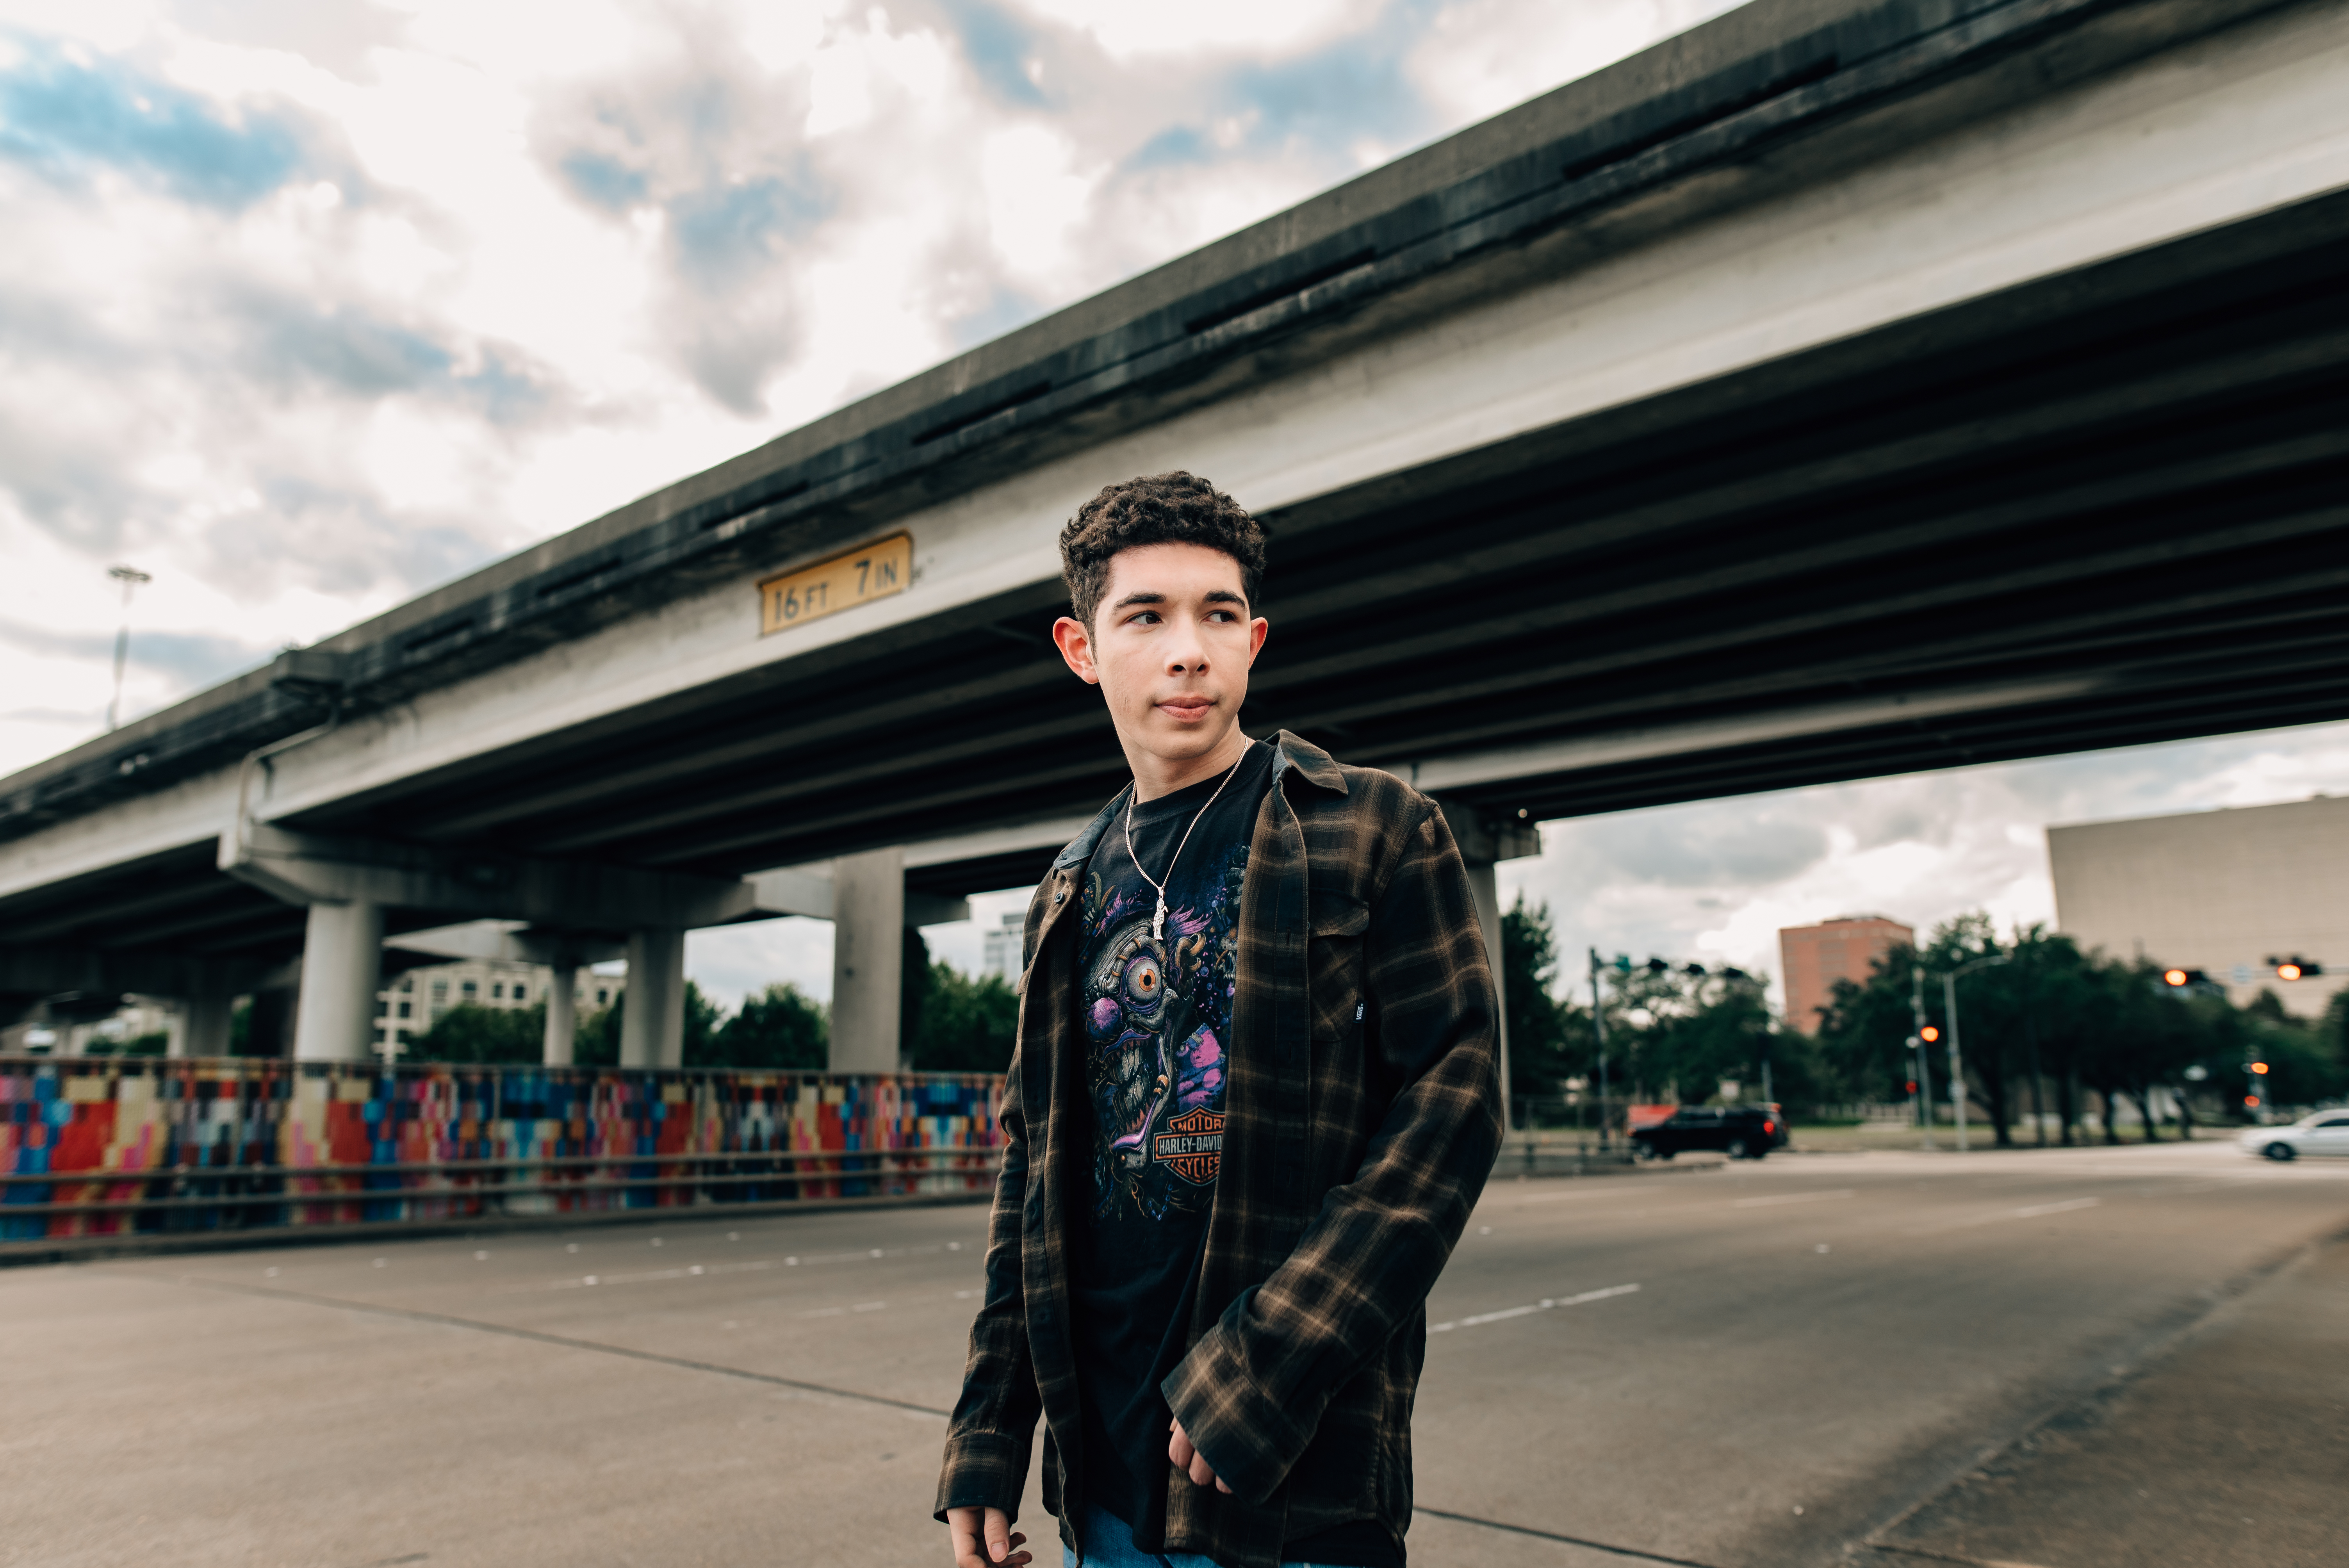 urban shoot for a senior guy by an overpass highway